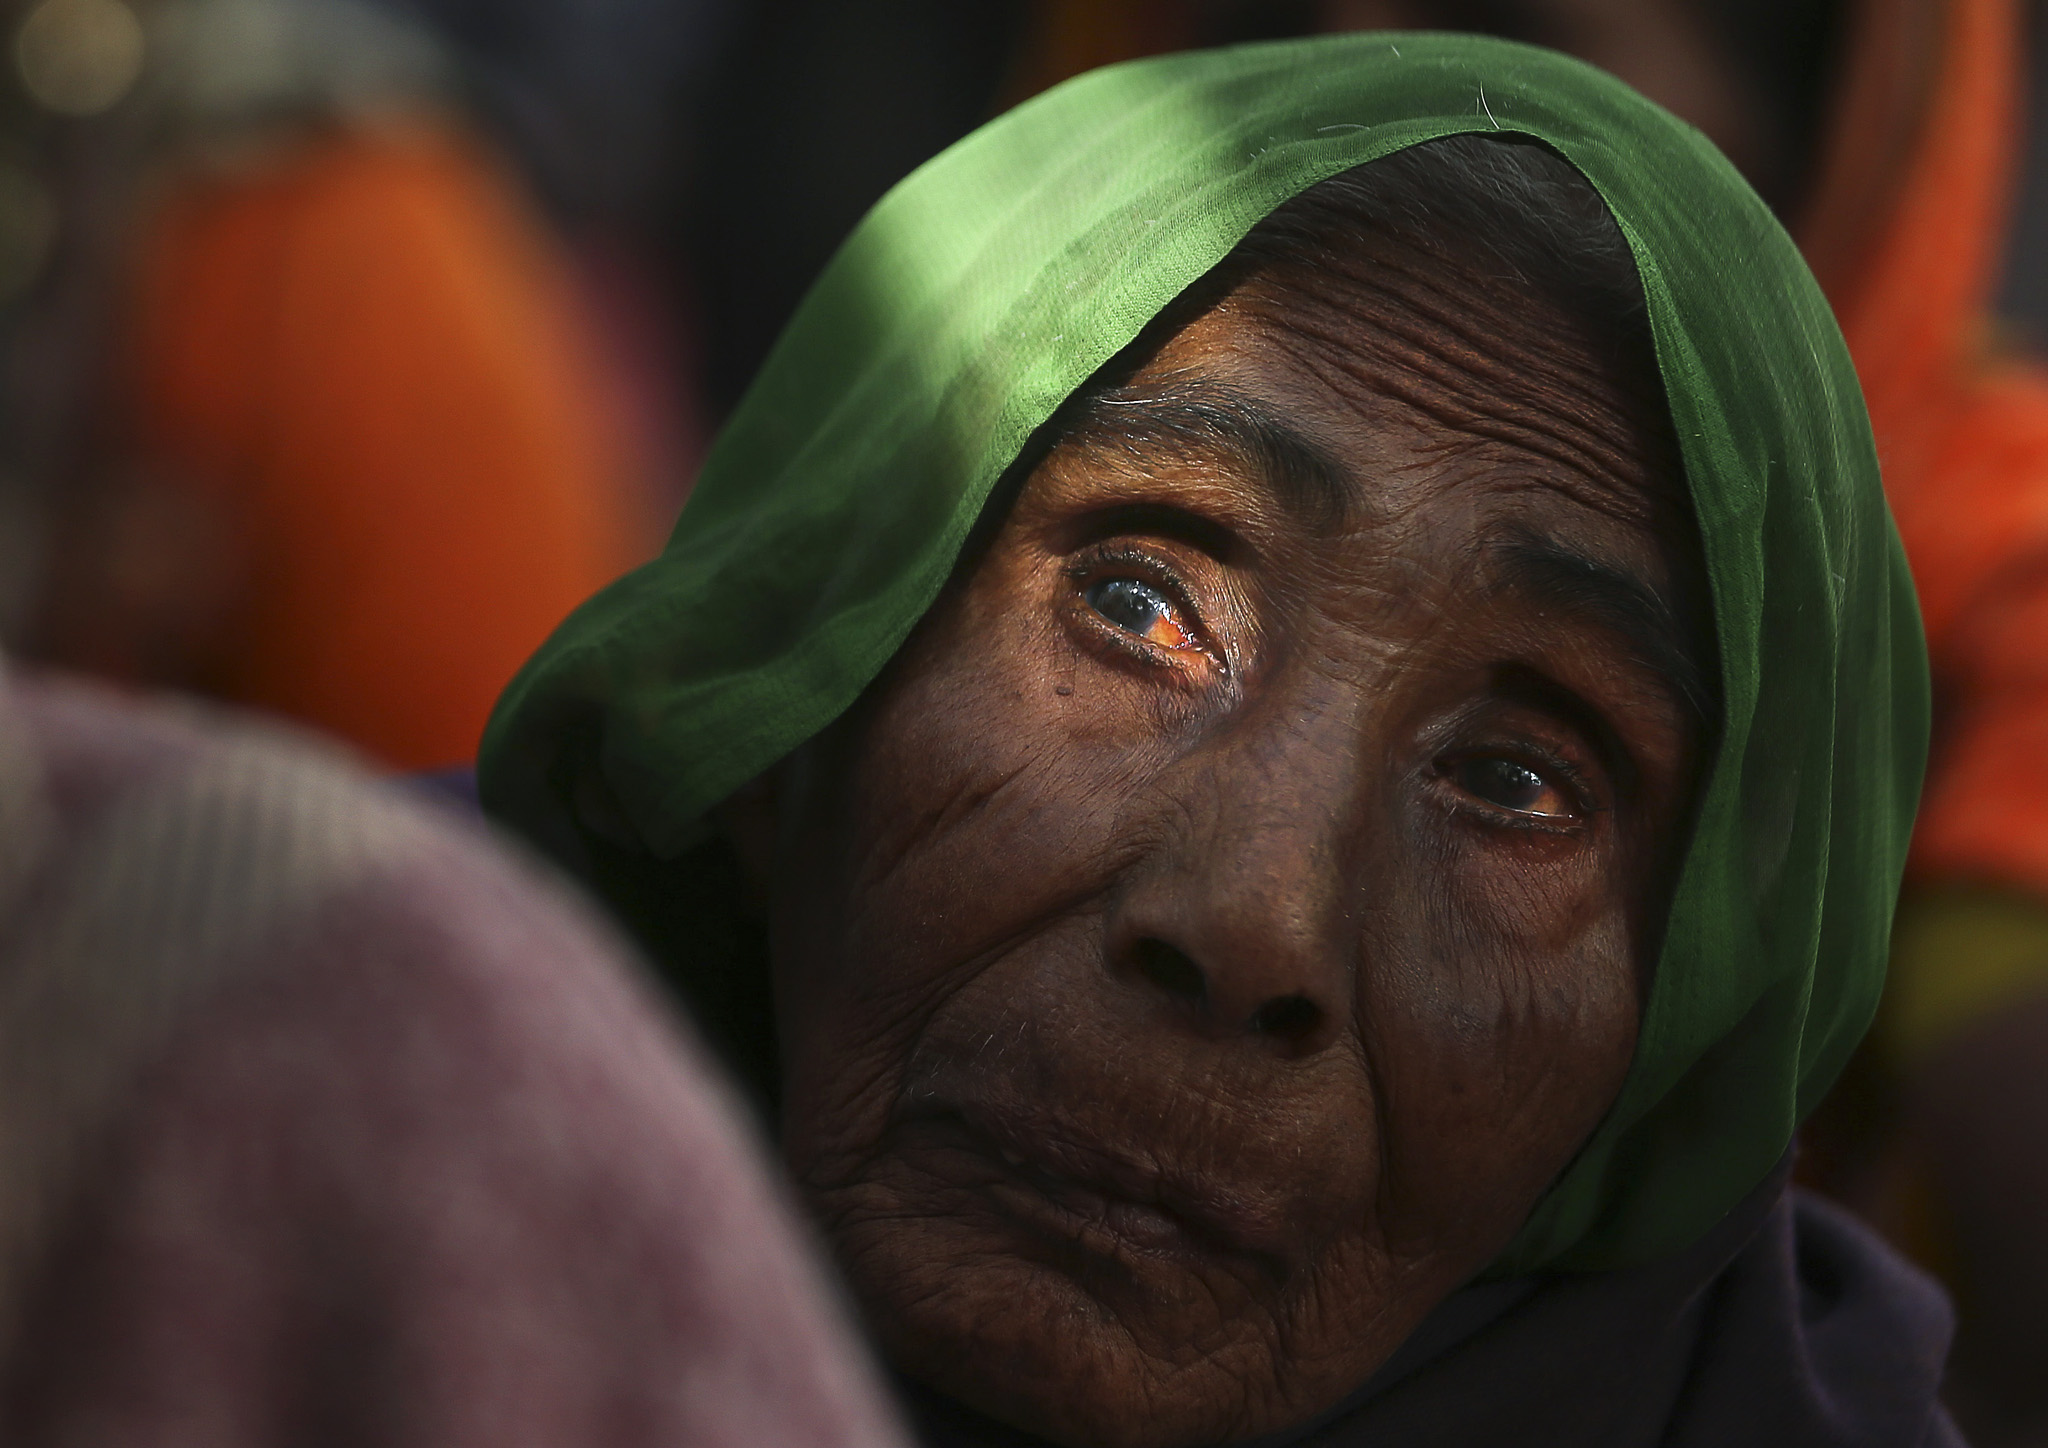 An elderly woman participates in a protest in New Delhi, India, Wednesday, Nov. 27, 2013. The protesters demanded a universal old age pension for those above 60 years of age,  opposing the central governmentís proposal of US$ 3 per month. India is home to 142.9 million elderly, aged above 54 years. (AP Photo/Manish Swarup)